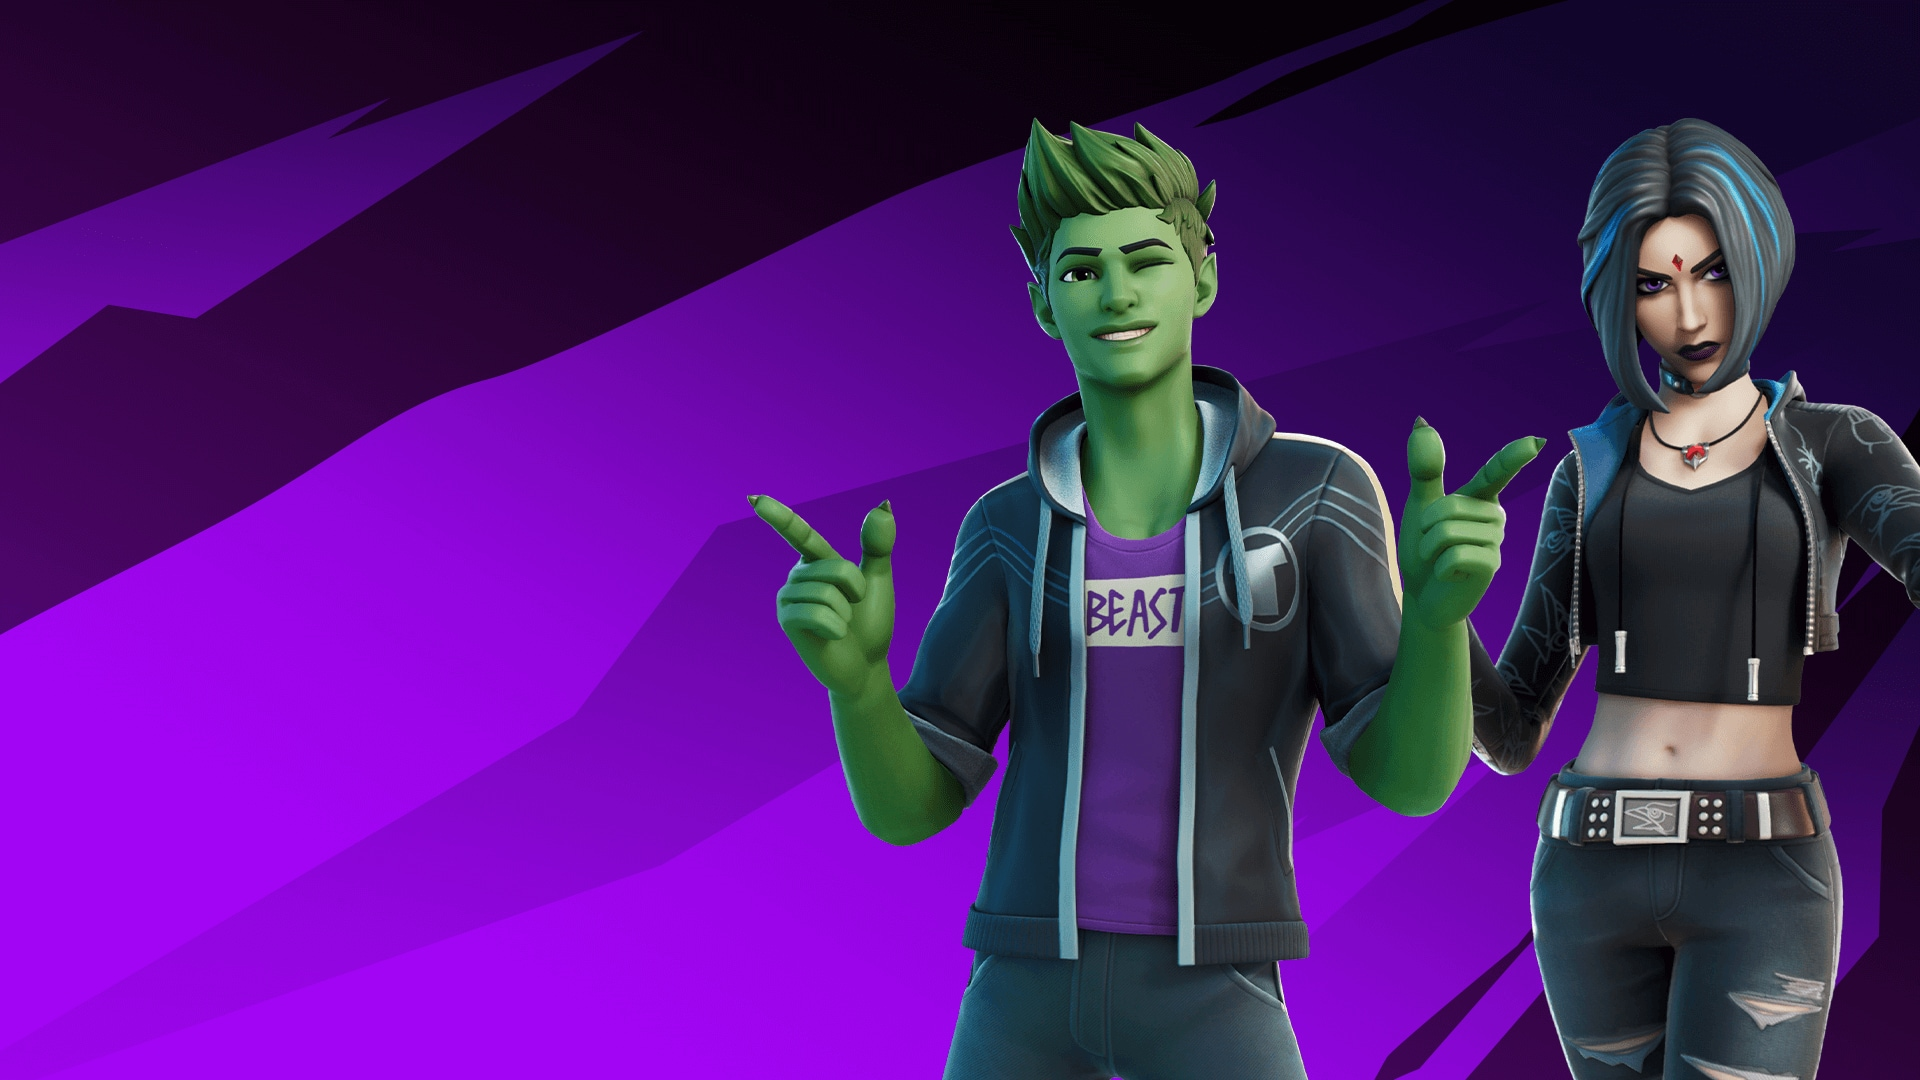 Play Fortnite for free on Epic Games Store